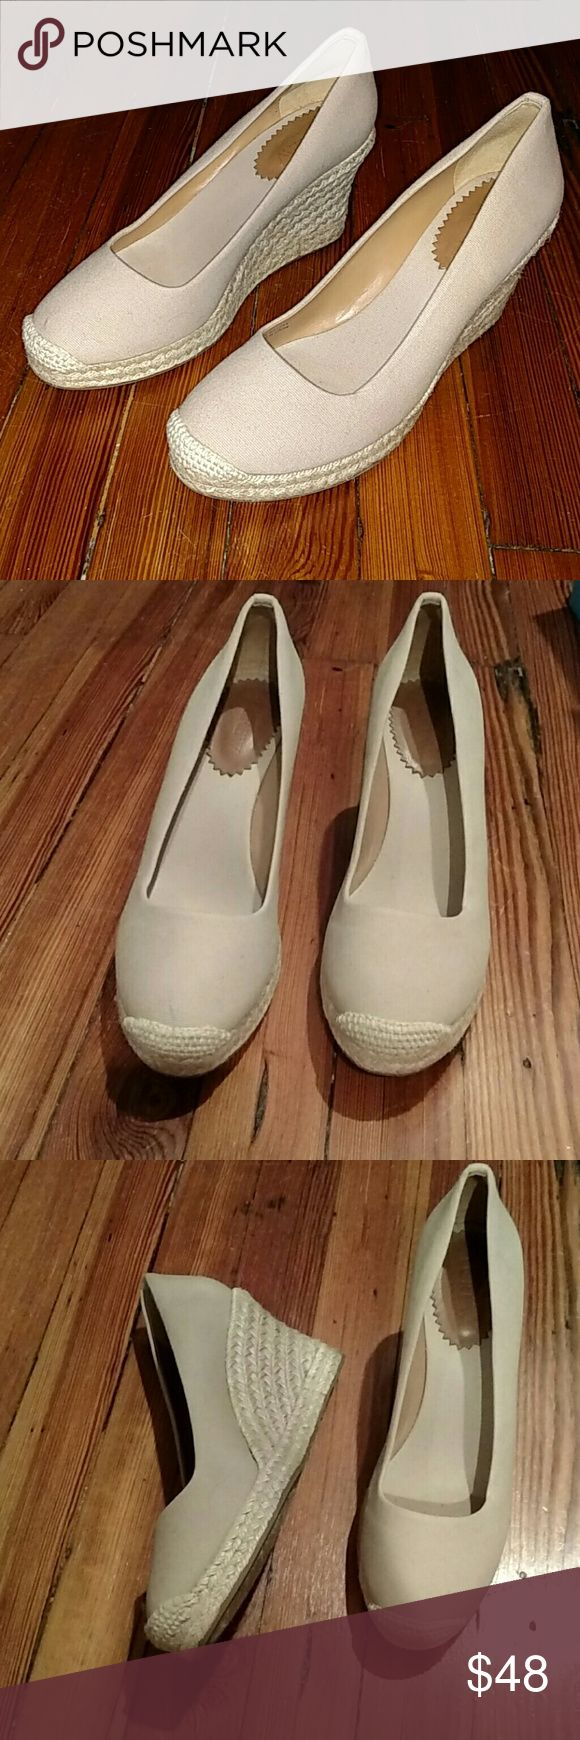 "LN! J.Crew Nude Espadrille Wedges Worn once, but interior and exterior are perfectly clean, bottom soles show some sign of that use as pictured. Comfortable, versatile, beautiful shoes for this season! Heel height is 3"". J. Crew Shoes Wedges"